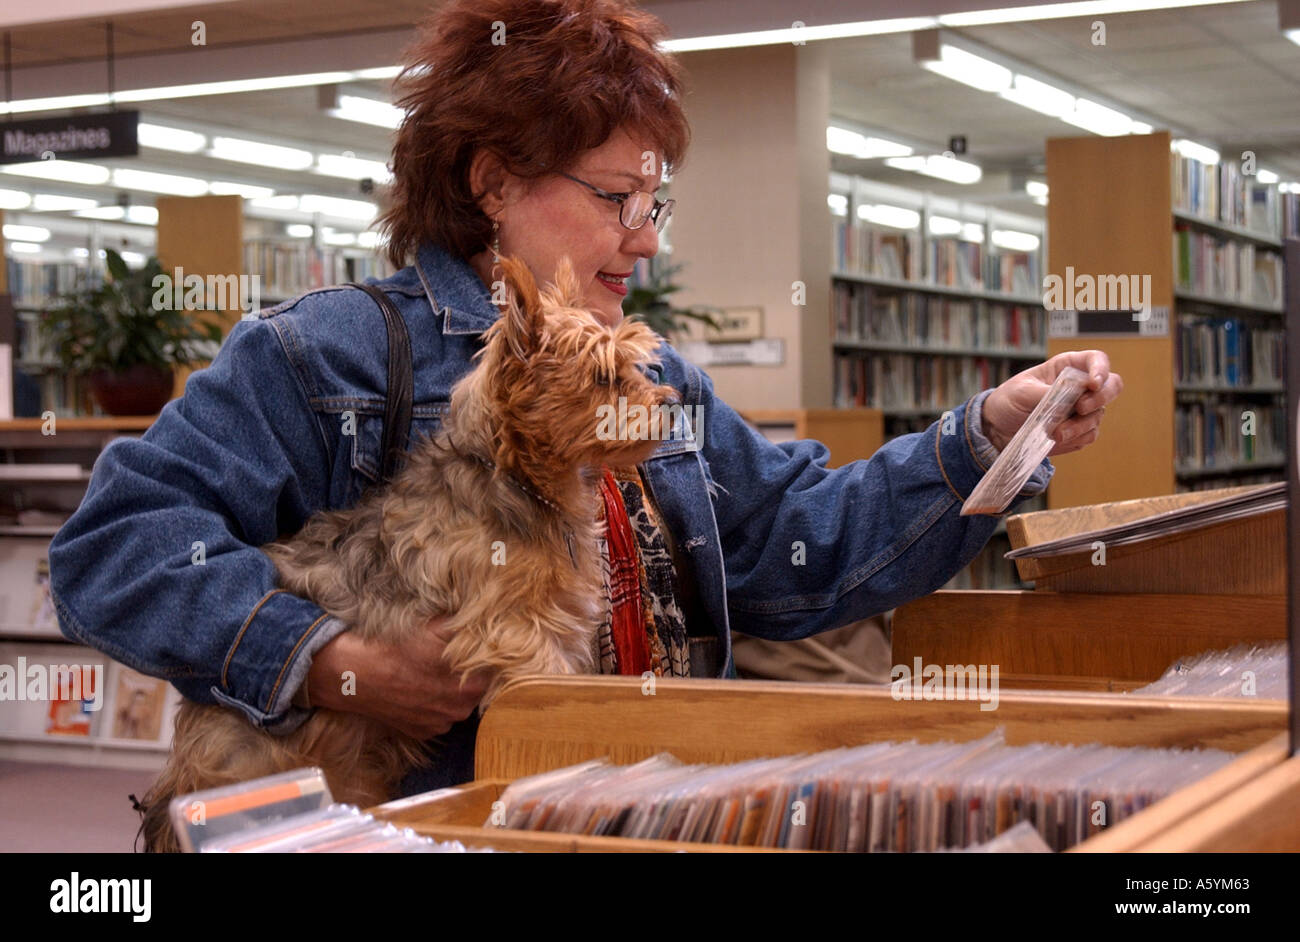 A woman shopping for CD s at a library with her small dog - Stock Image